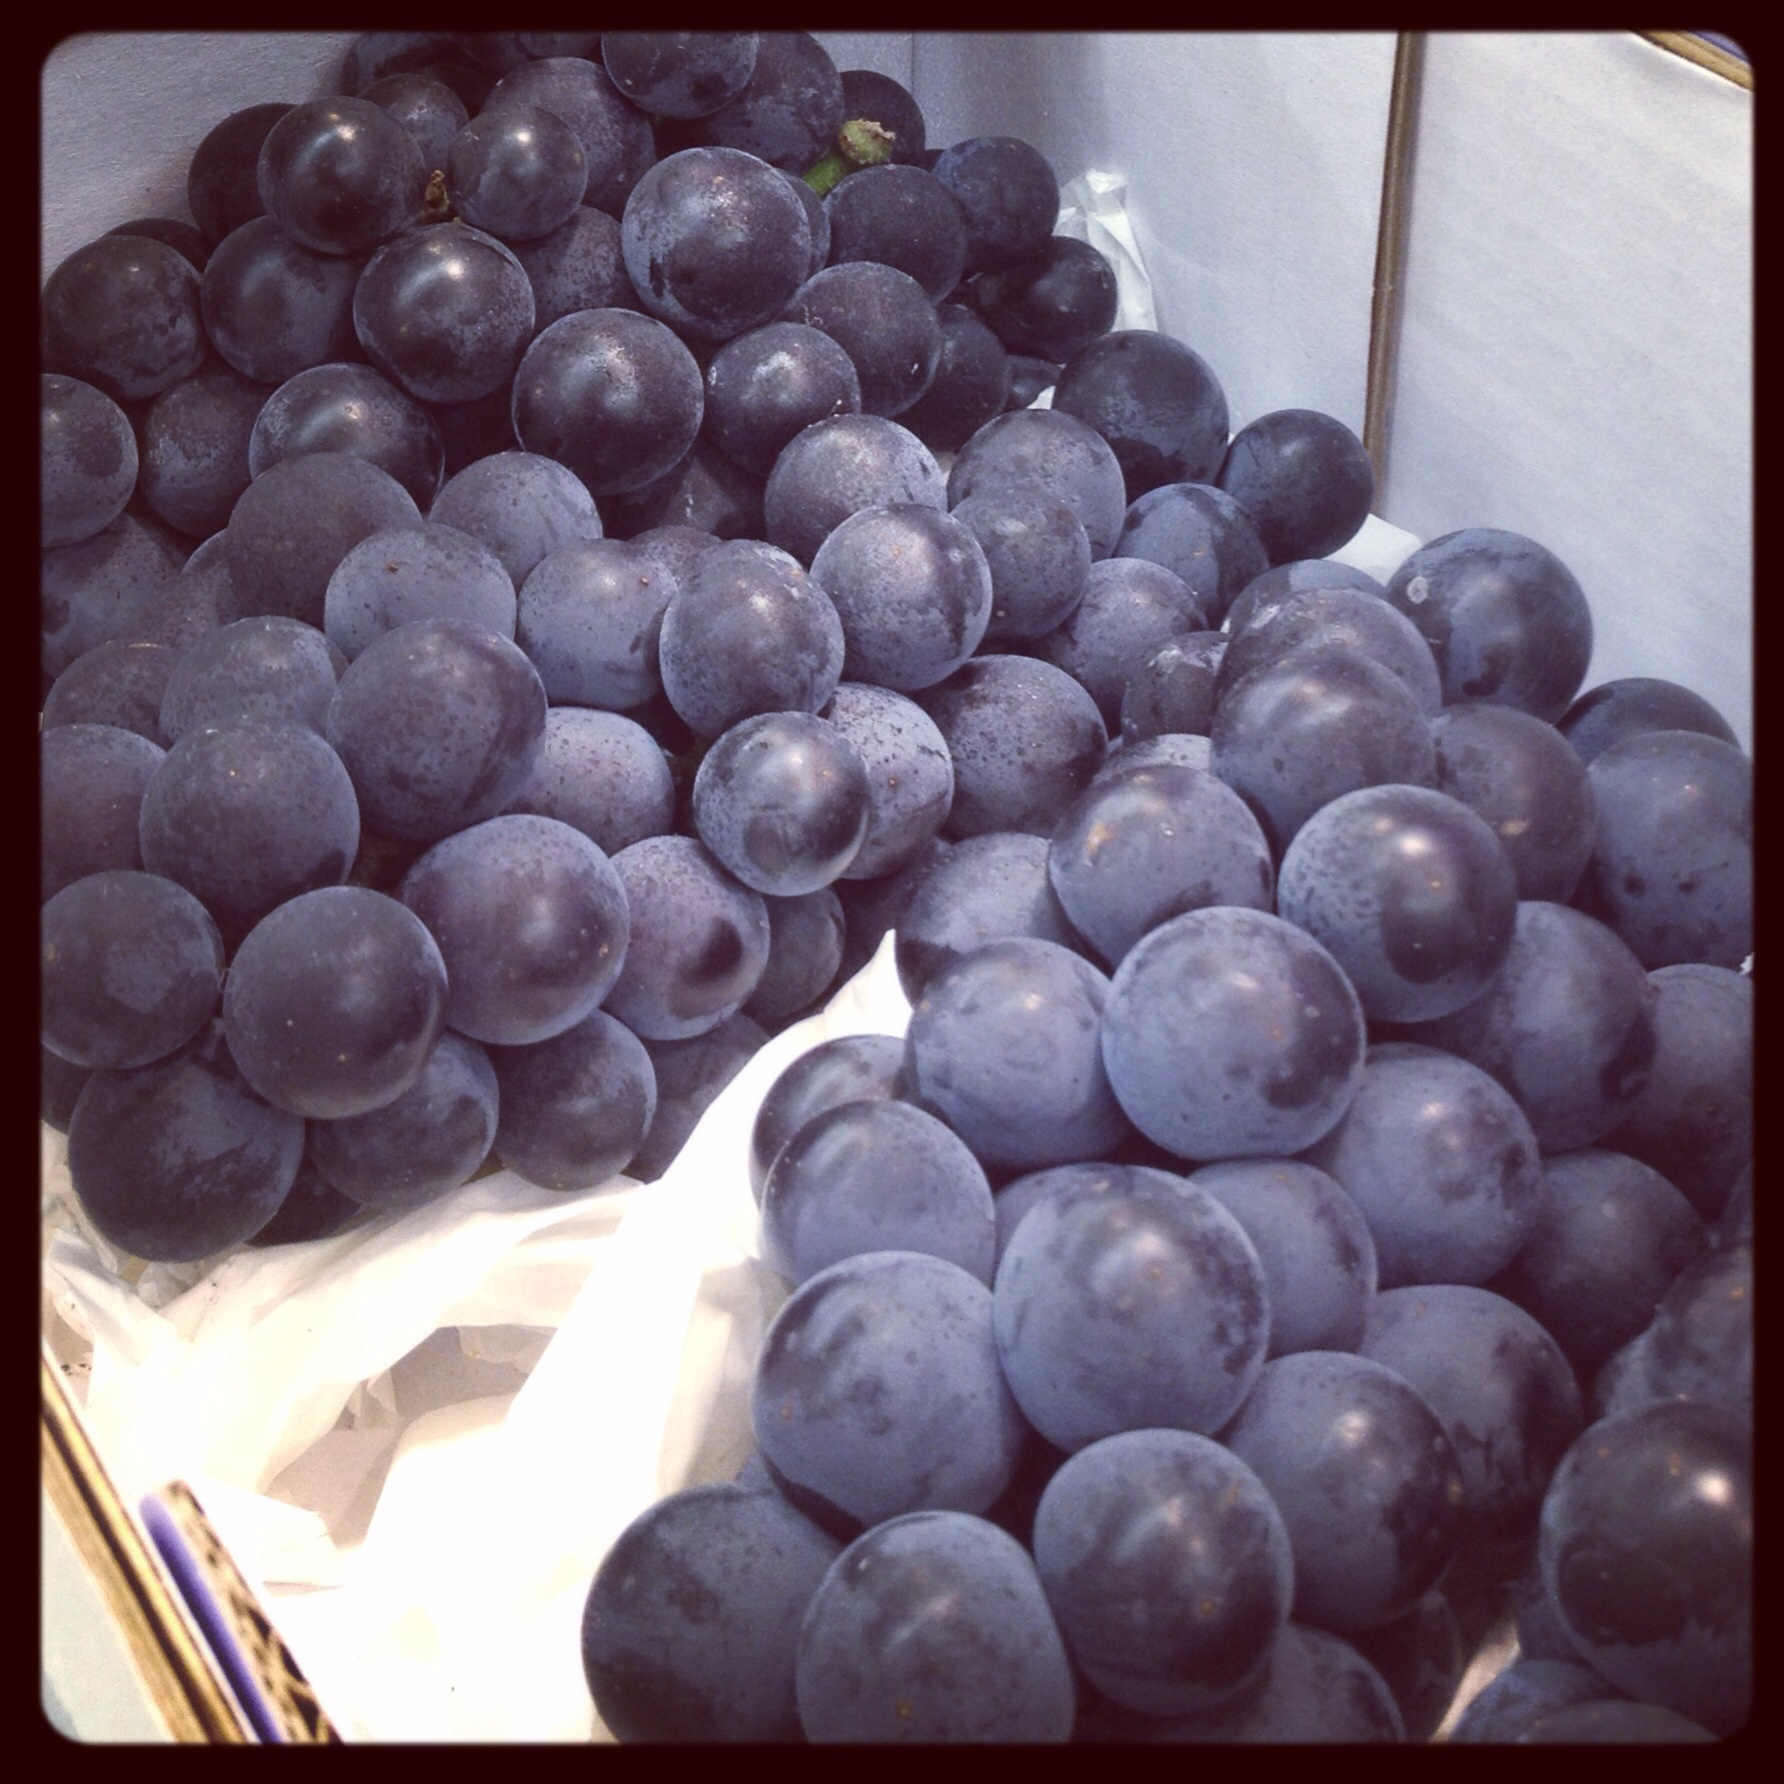 These are also one of my favourite Korean summertime fruits! They are different than regular grapes - I call them concord grapes because we used to eat those back home in Vancouver, but I'm not sure if 거봉포도 (GuhBong PohDoh) is exactly the same thing or just similar. When I start to see these grapes come back in the stores and street, it definitely means Korea summertime to me!